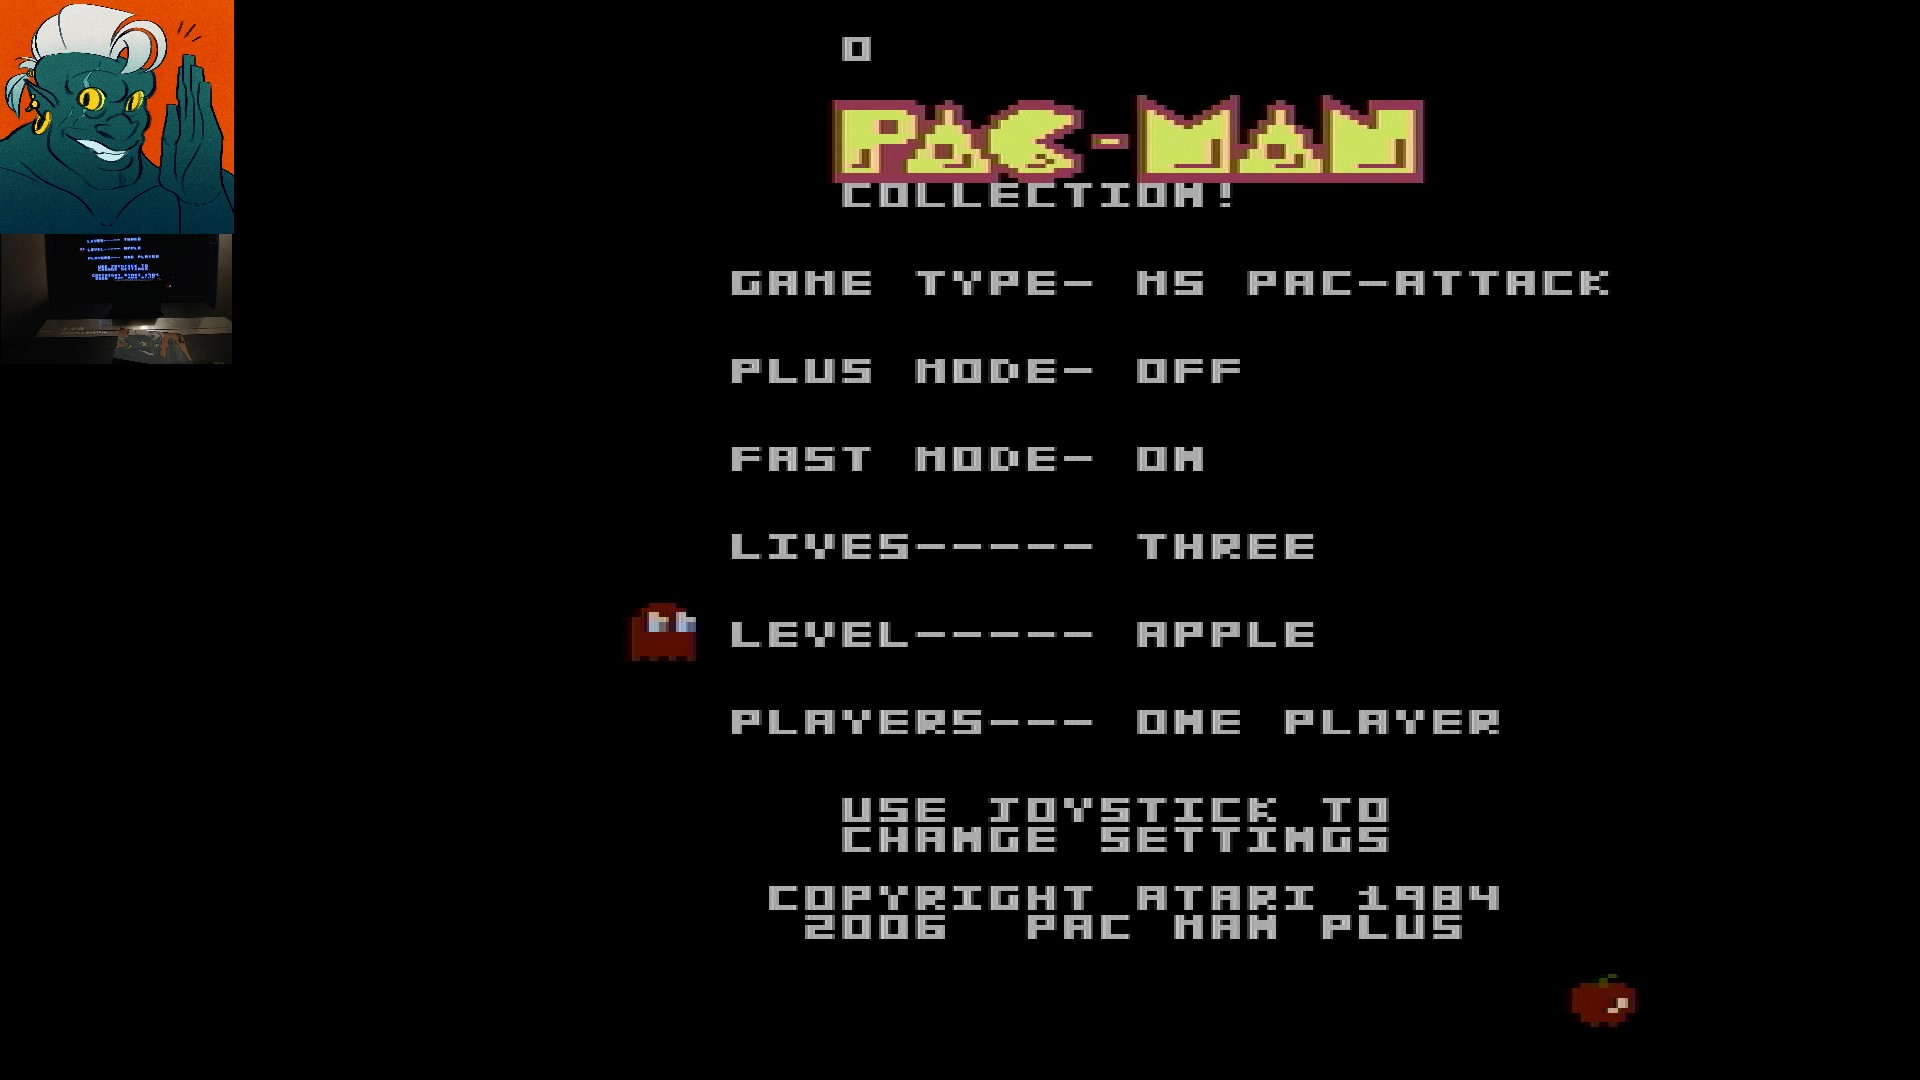 AwesomeOgre: Pac-Man Collection: Ms. Pac-Attack [Apple/Plus Off/Fast On] (Atari 7800) 103,490 points on 2019-12-07 09:49:57